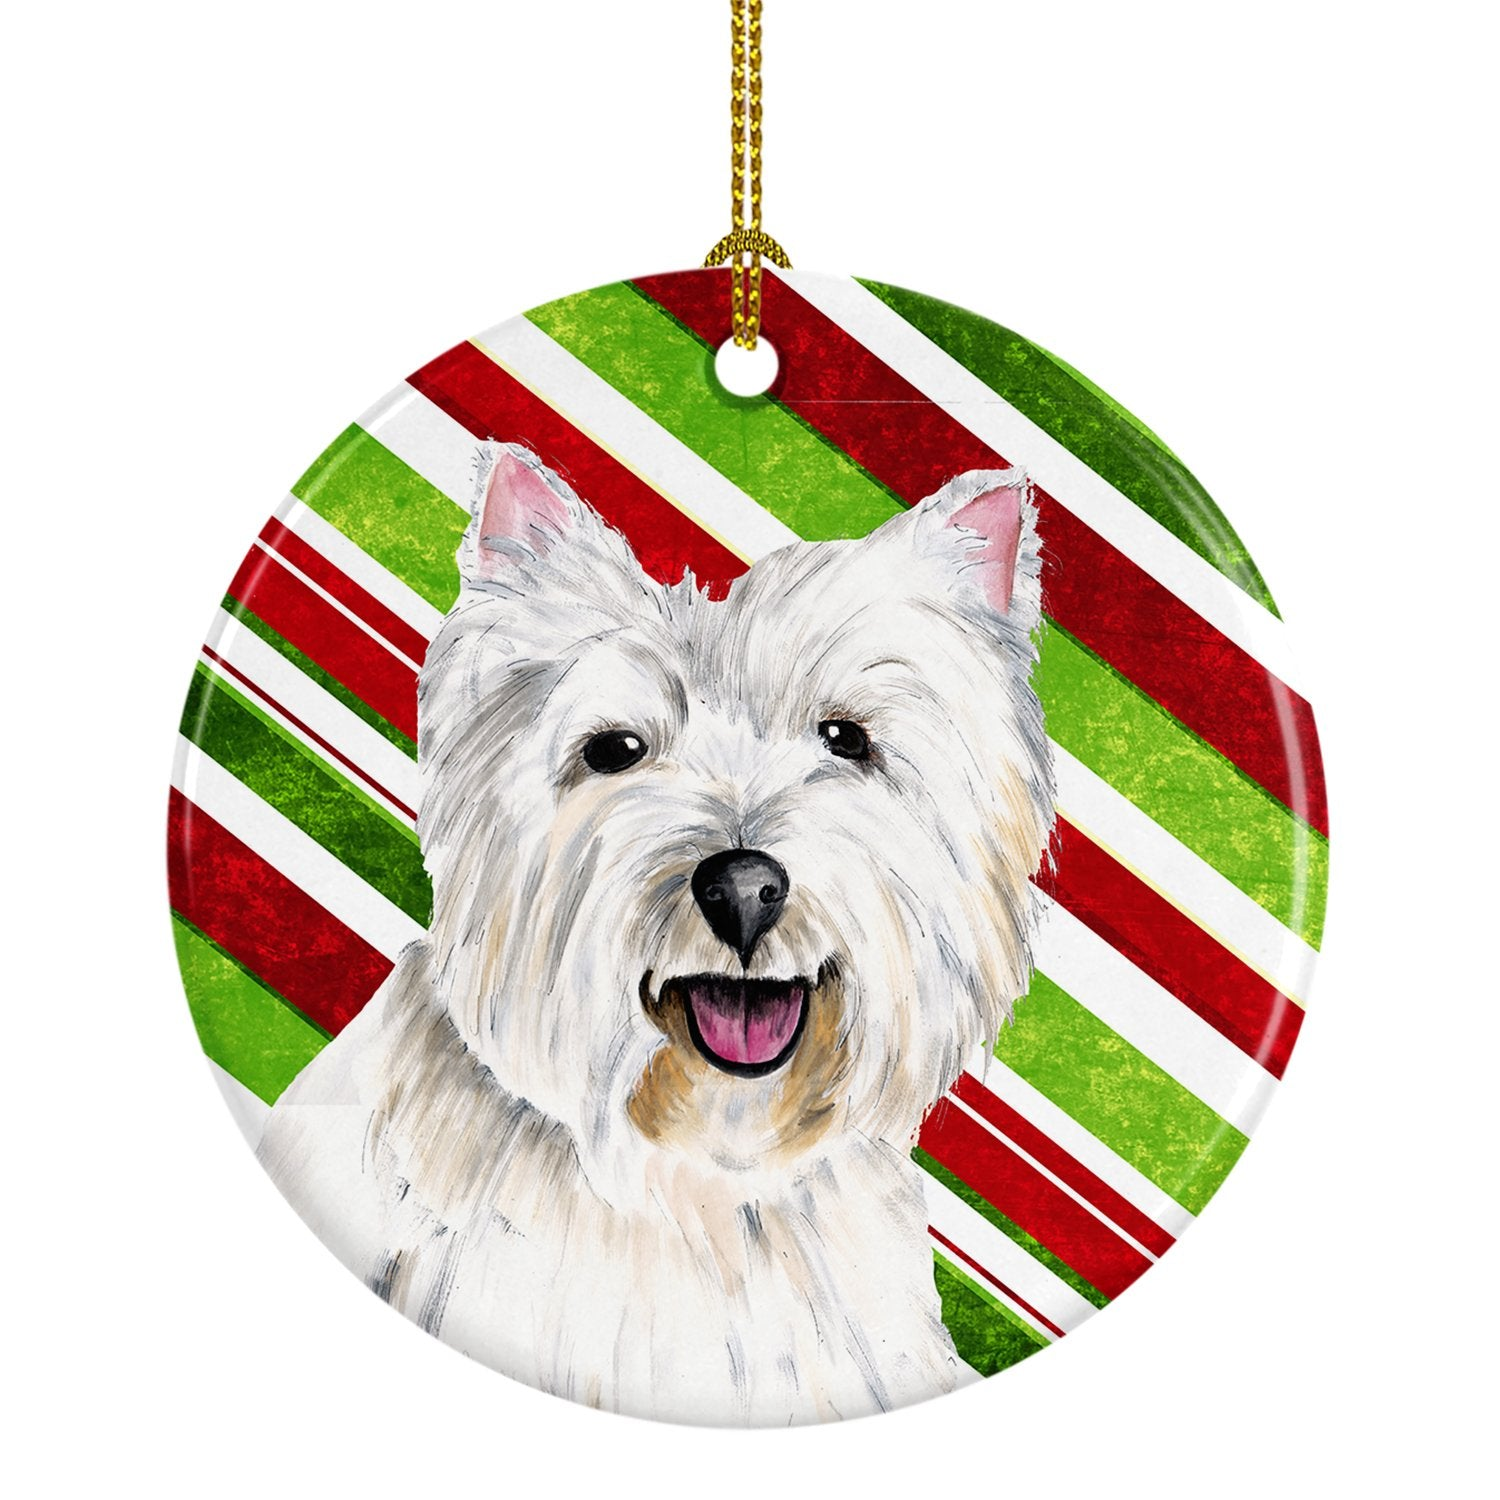 Westie Candy Cane Holiday Christmas  Ceramic Ornament SC9330 by Caroline's Treasures